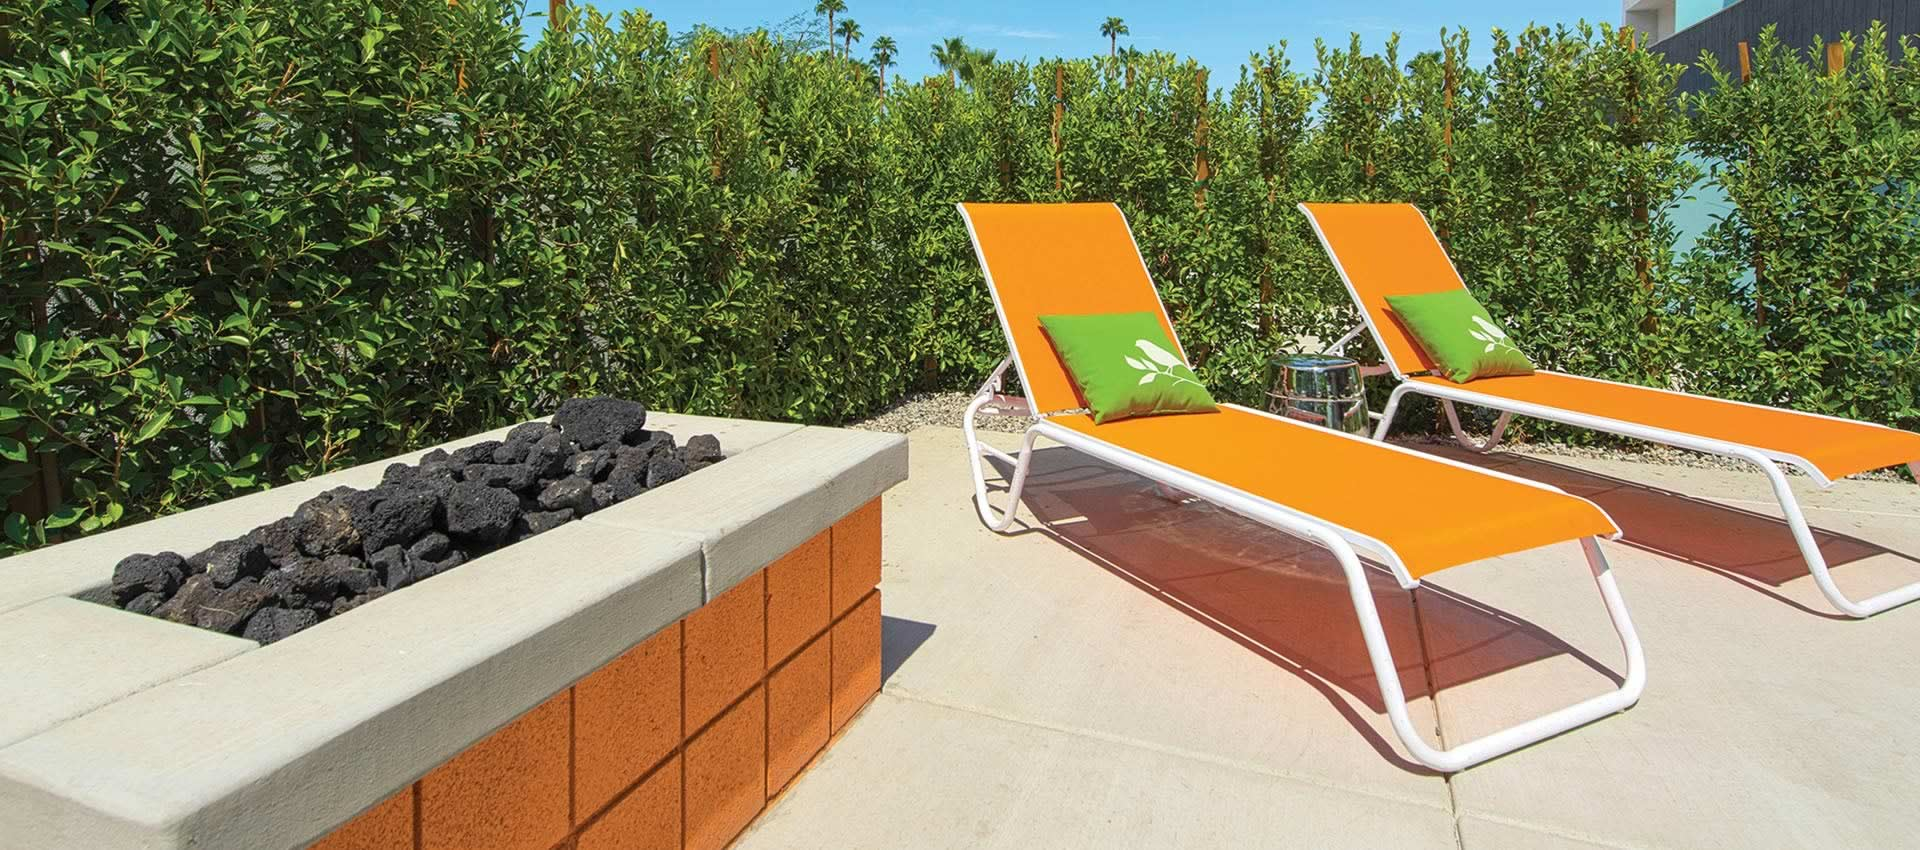 Orange lounge chairs by the outdoor firepit